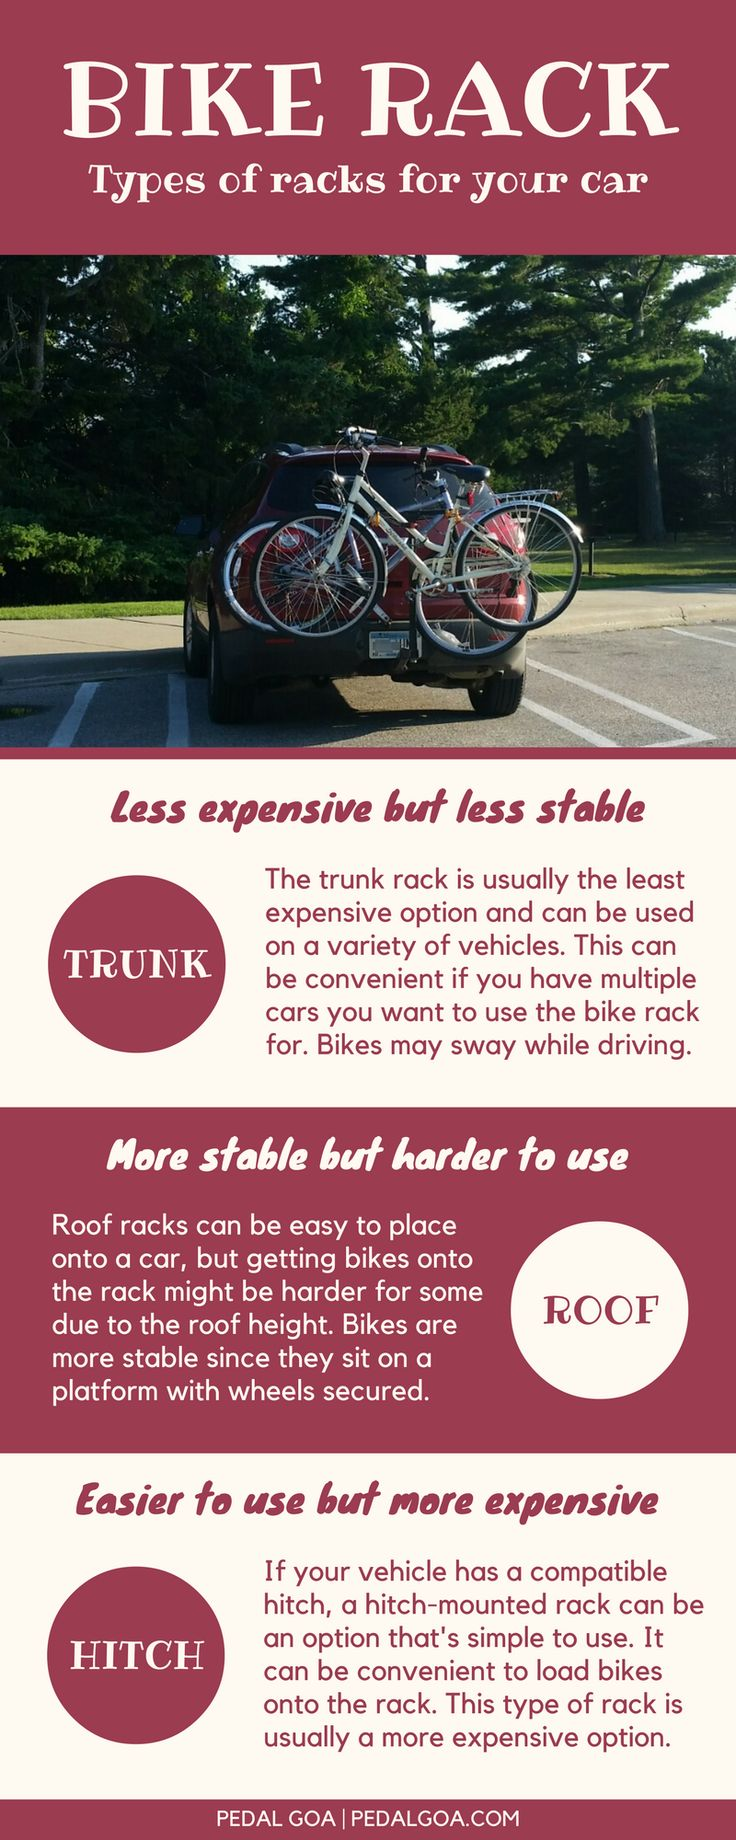 Best rack of the day car pictures - Best Bike Rack For Your Suv Or Car How To Choose A Bike Rack Hitch Roof Trunk